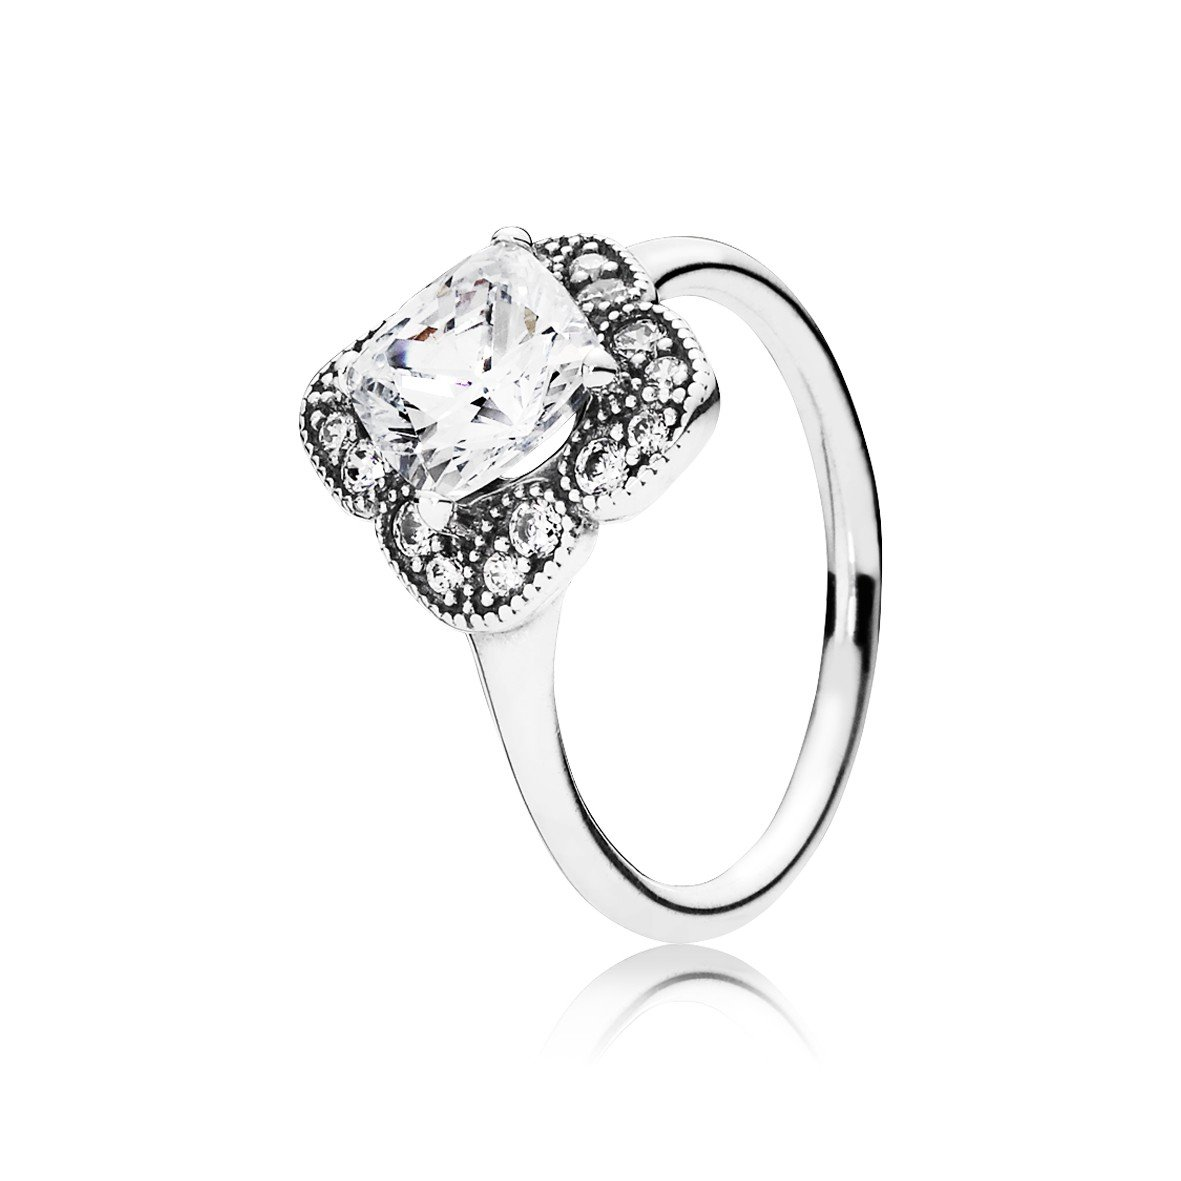 7cc208327 Authentic Pandora Fancy Ring in 925 Sterling Silver U.S. Size:9.5  190966CZ-60